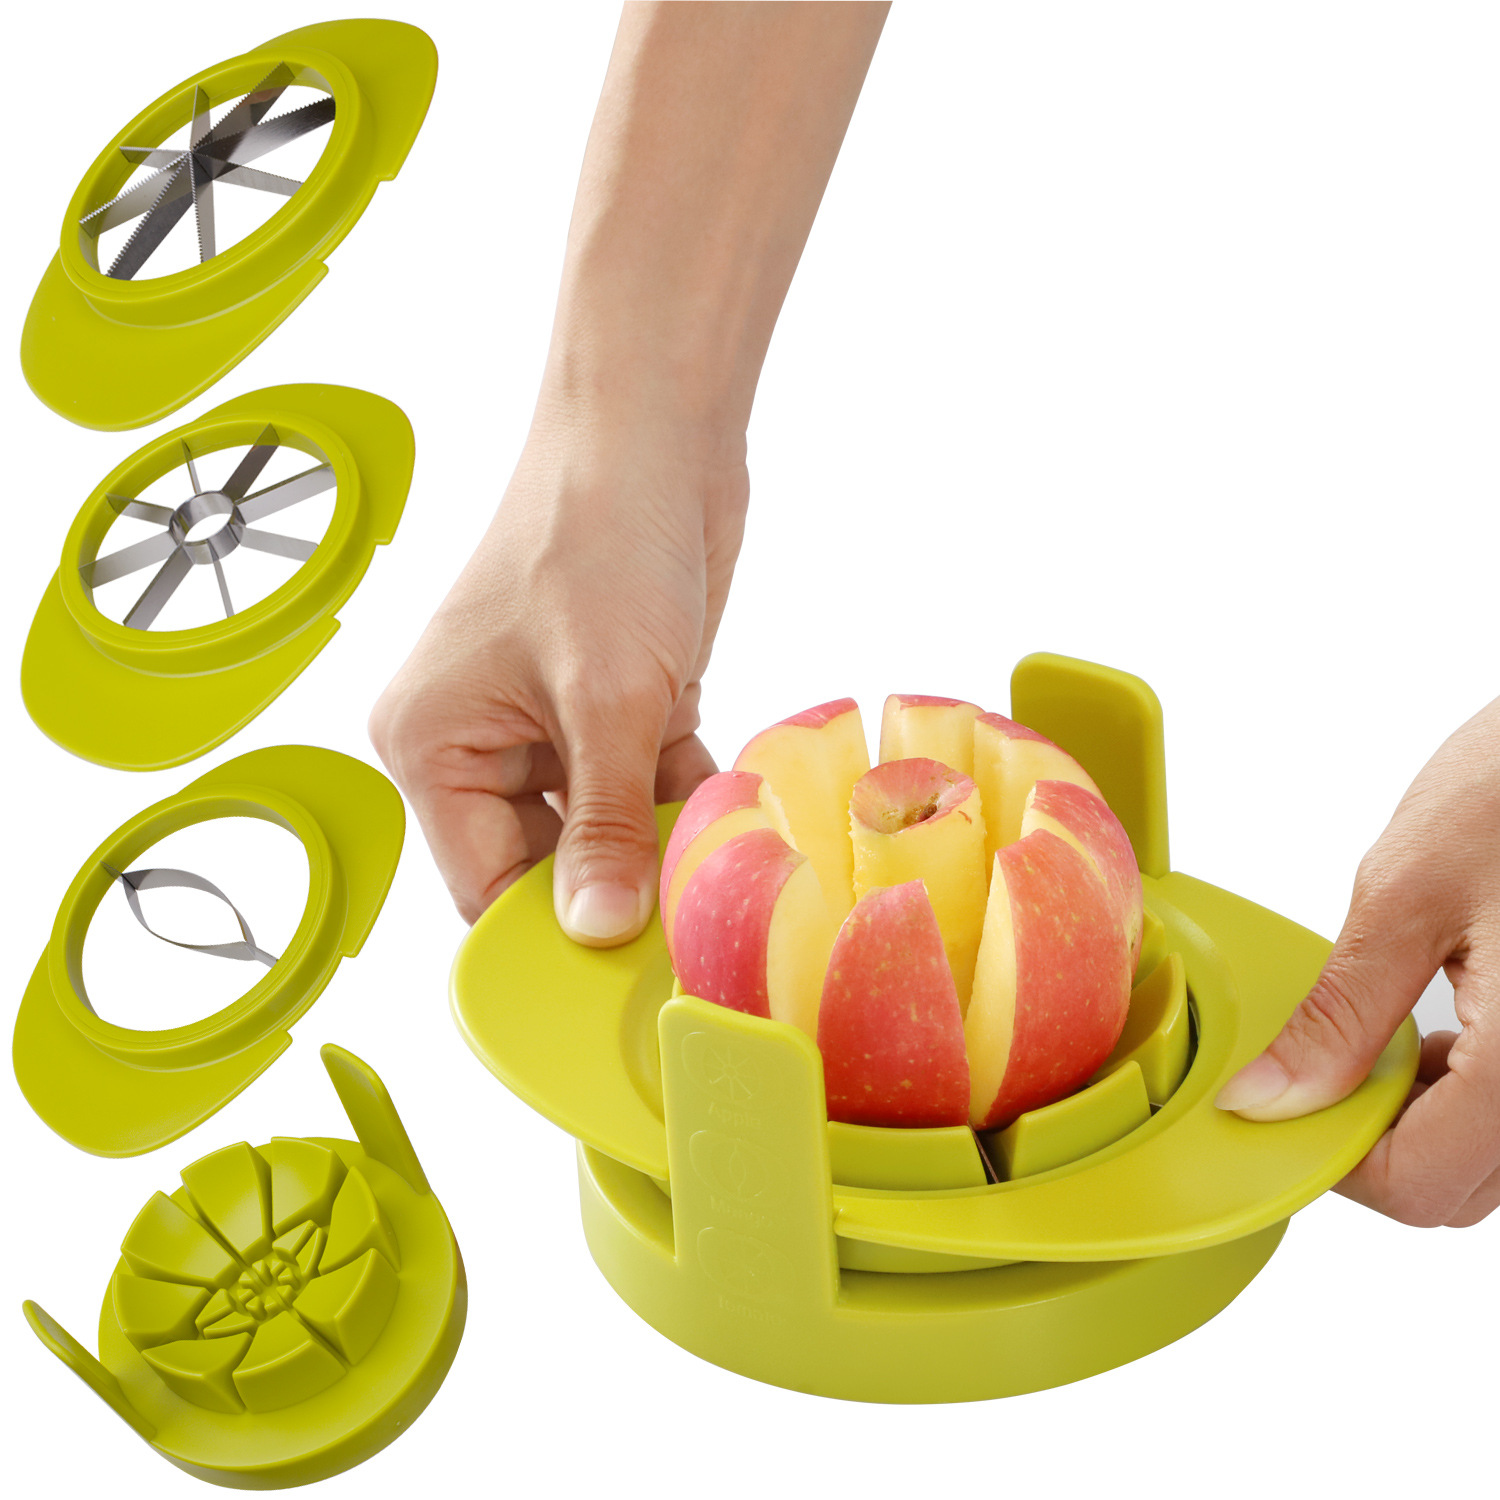 4pcs Apple Cutter Mango Splitters Avocado Fruit Slicer Corer Pear Cutters Knife Peeler Cut Tool